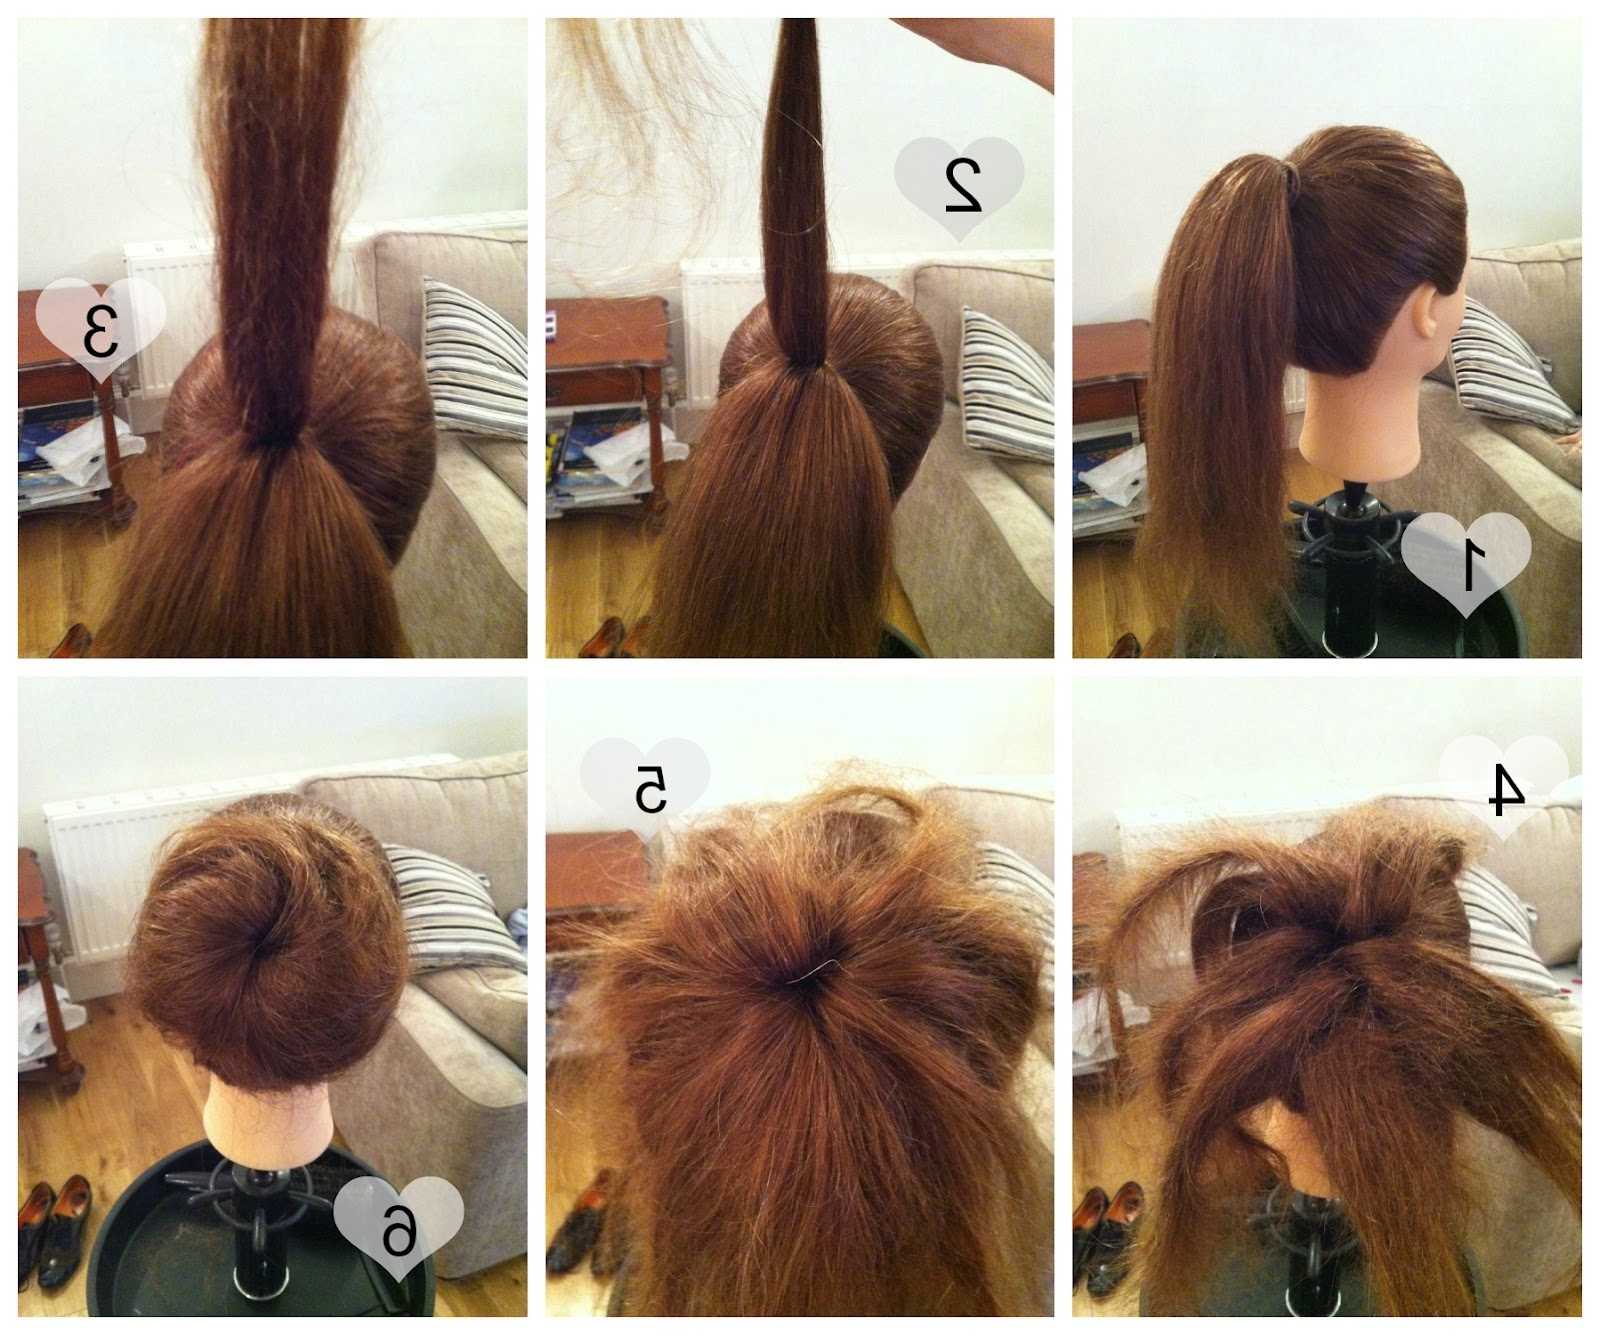 Simple Yet Stylish Updo Hairstyle Tutorials For All Impressive Intended For Quick Easy Updo Hairstyles For Thick Hair (View 3 of 15)